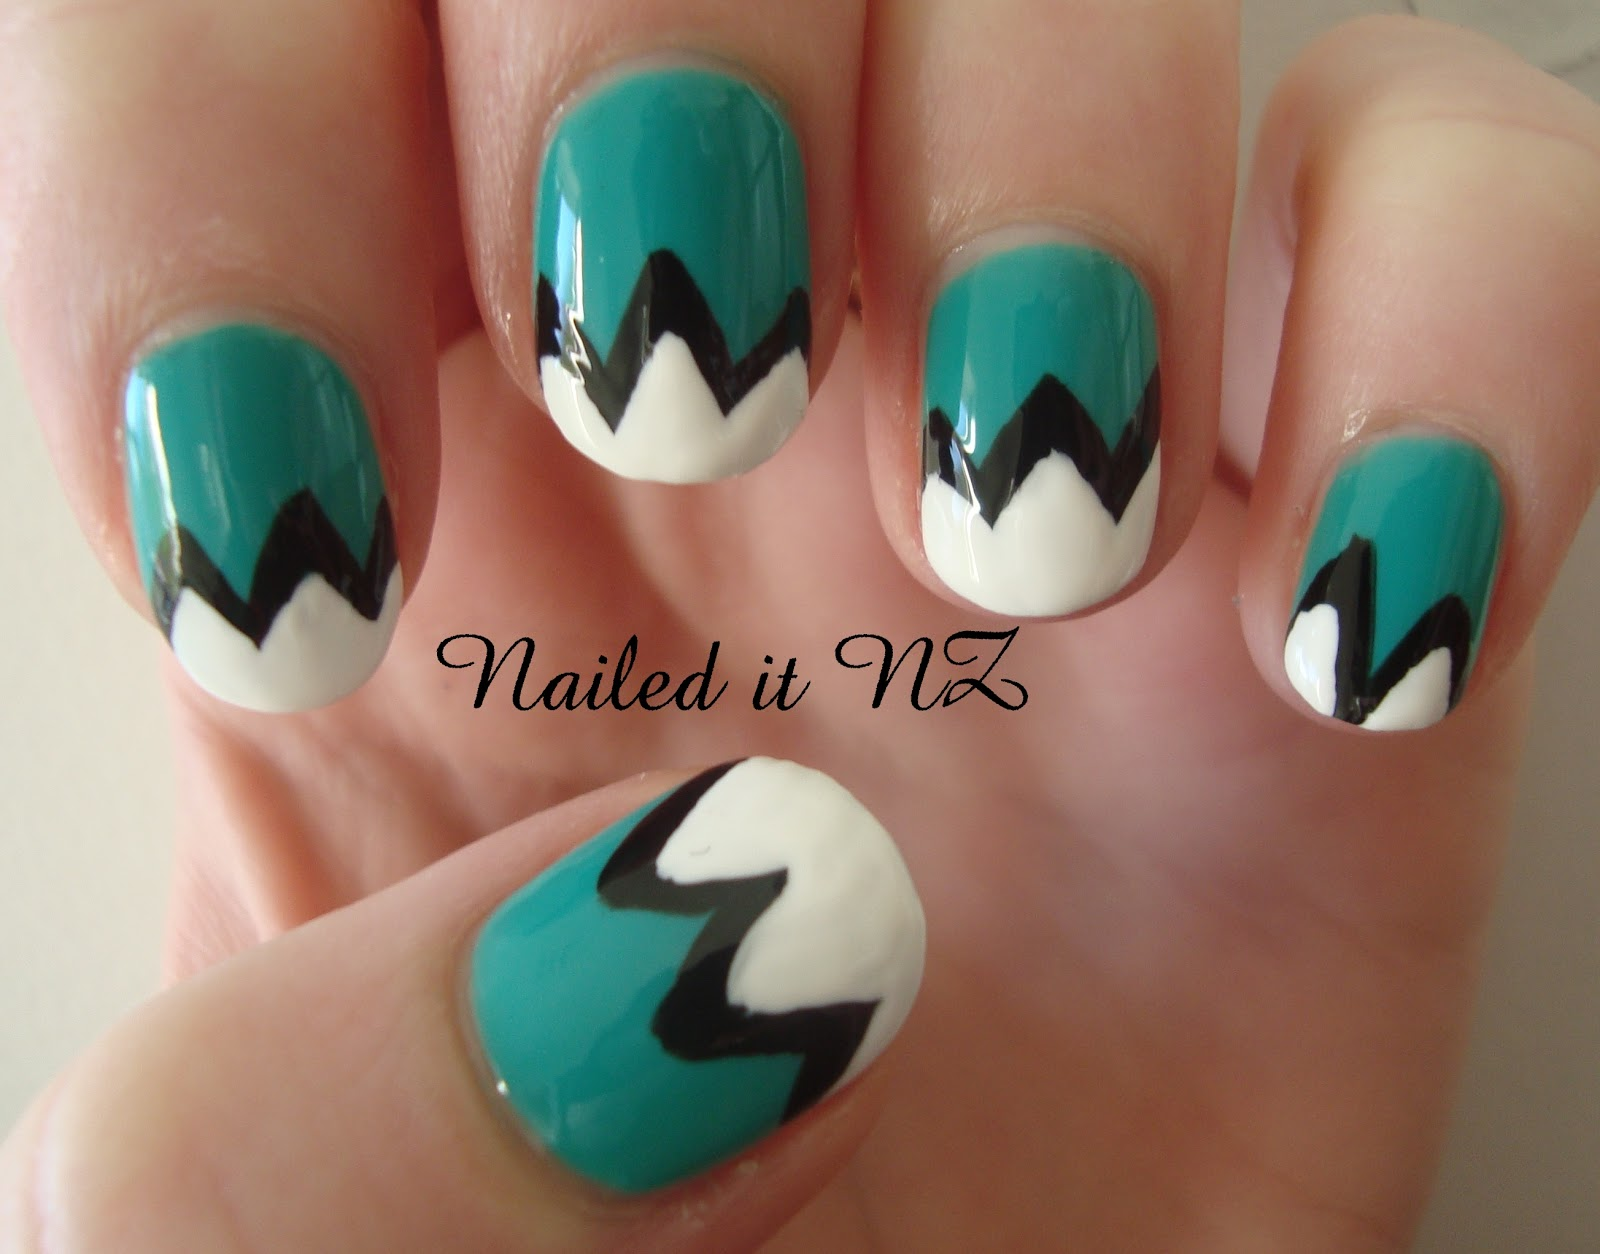 19 Cool Easy Nail Designs For Short Nails Images - Cool Easy Short ...